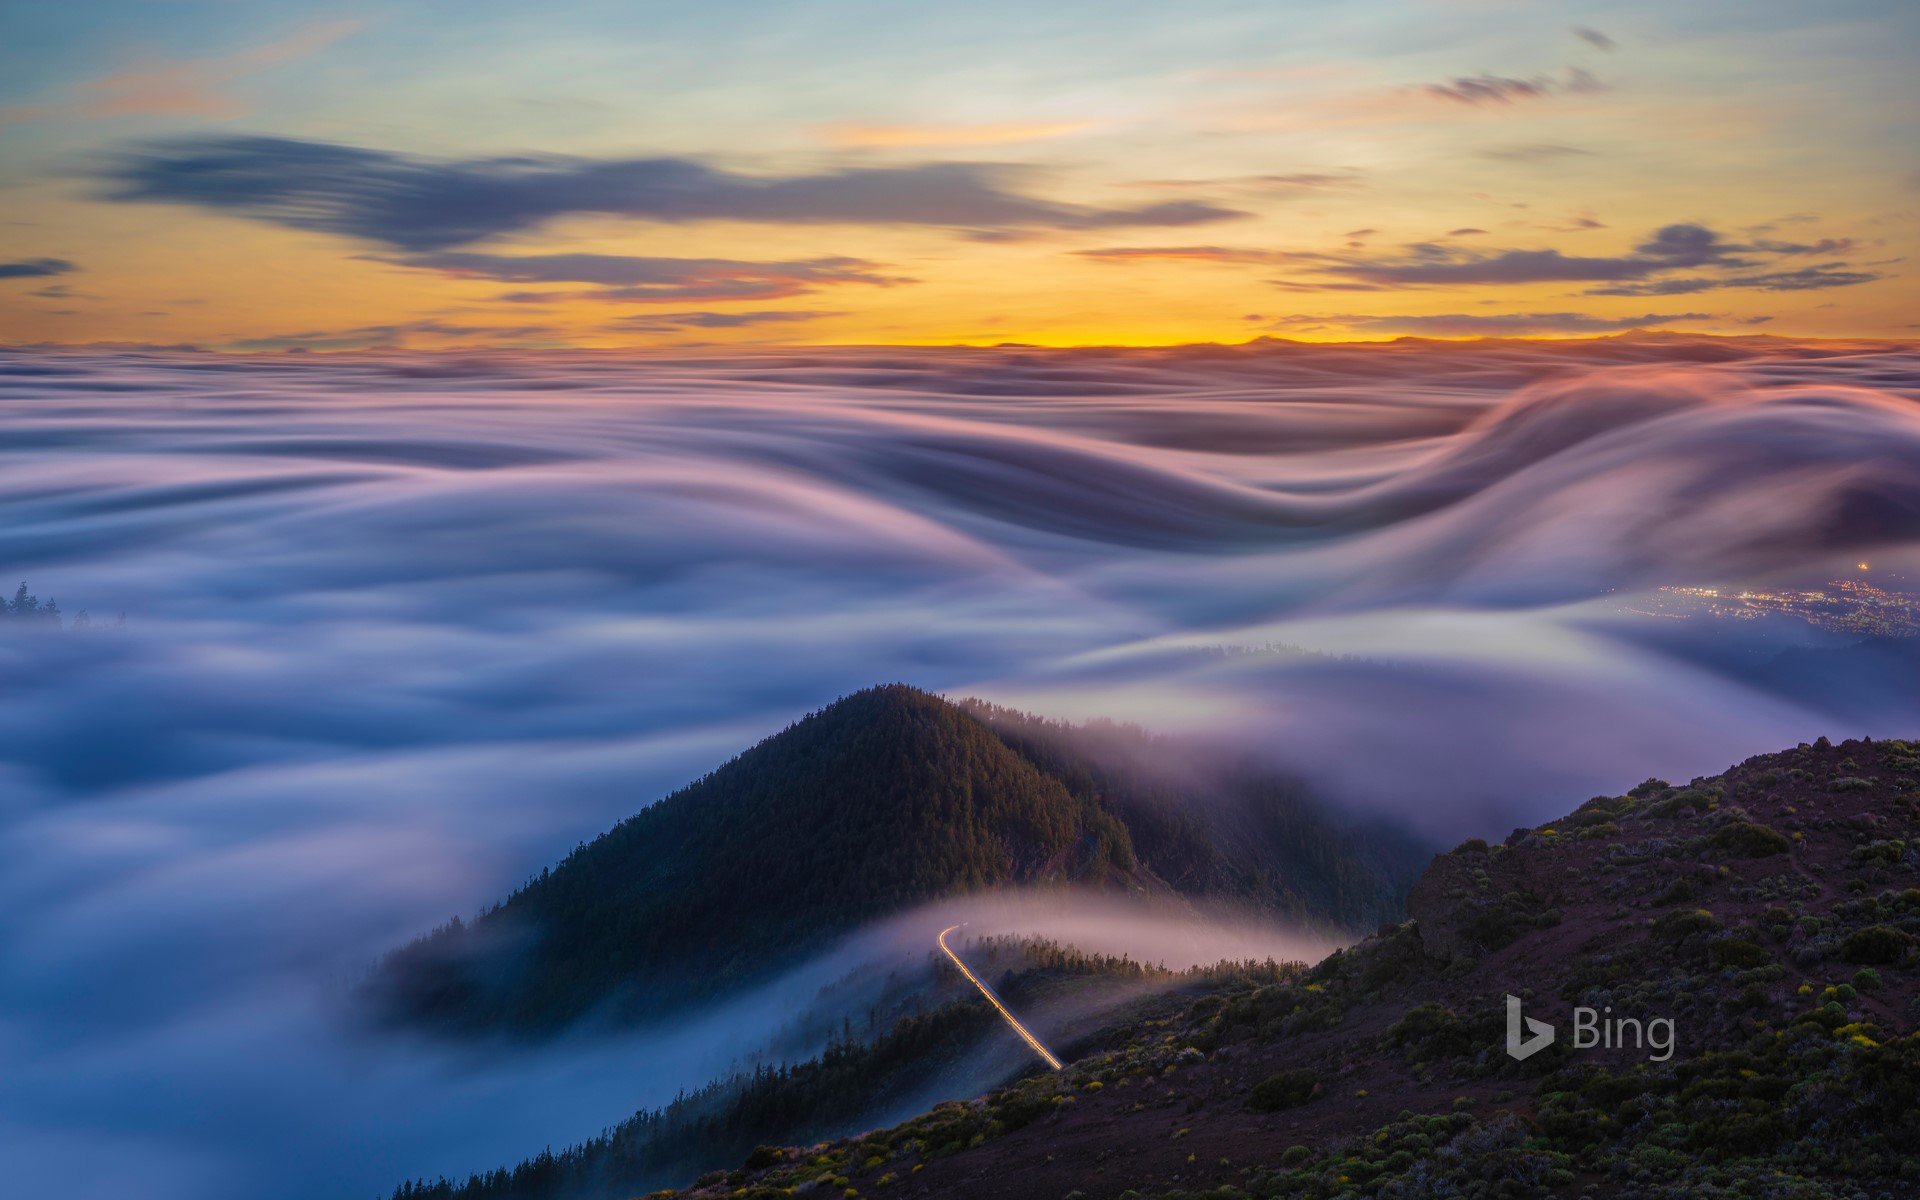 Clouds flowing over the mountains of Tenerife, Canary Islands, Spain